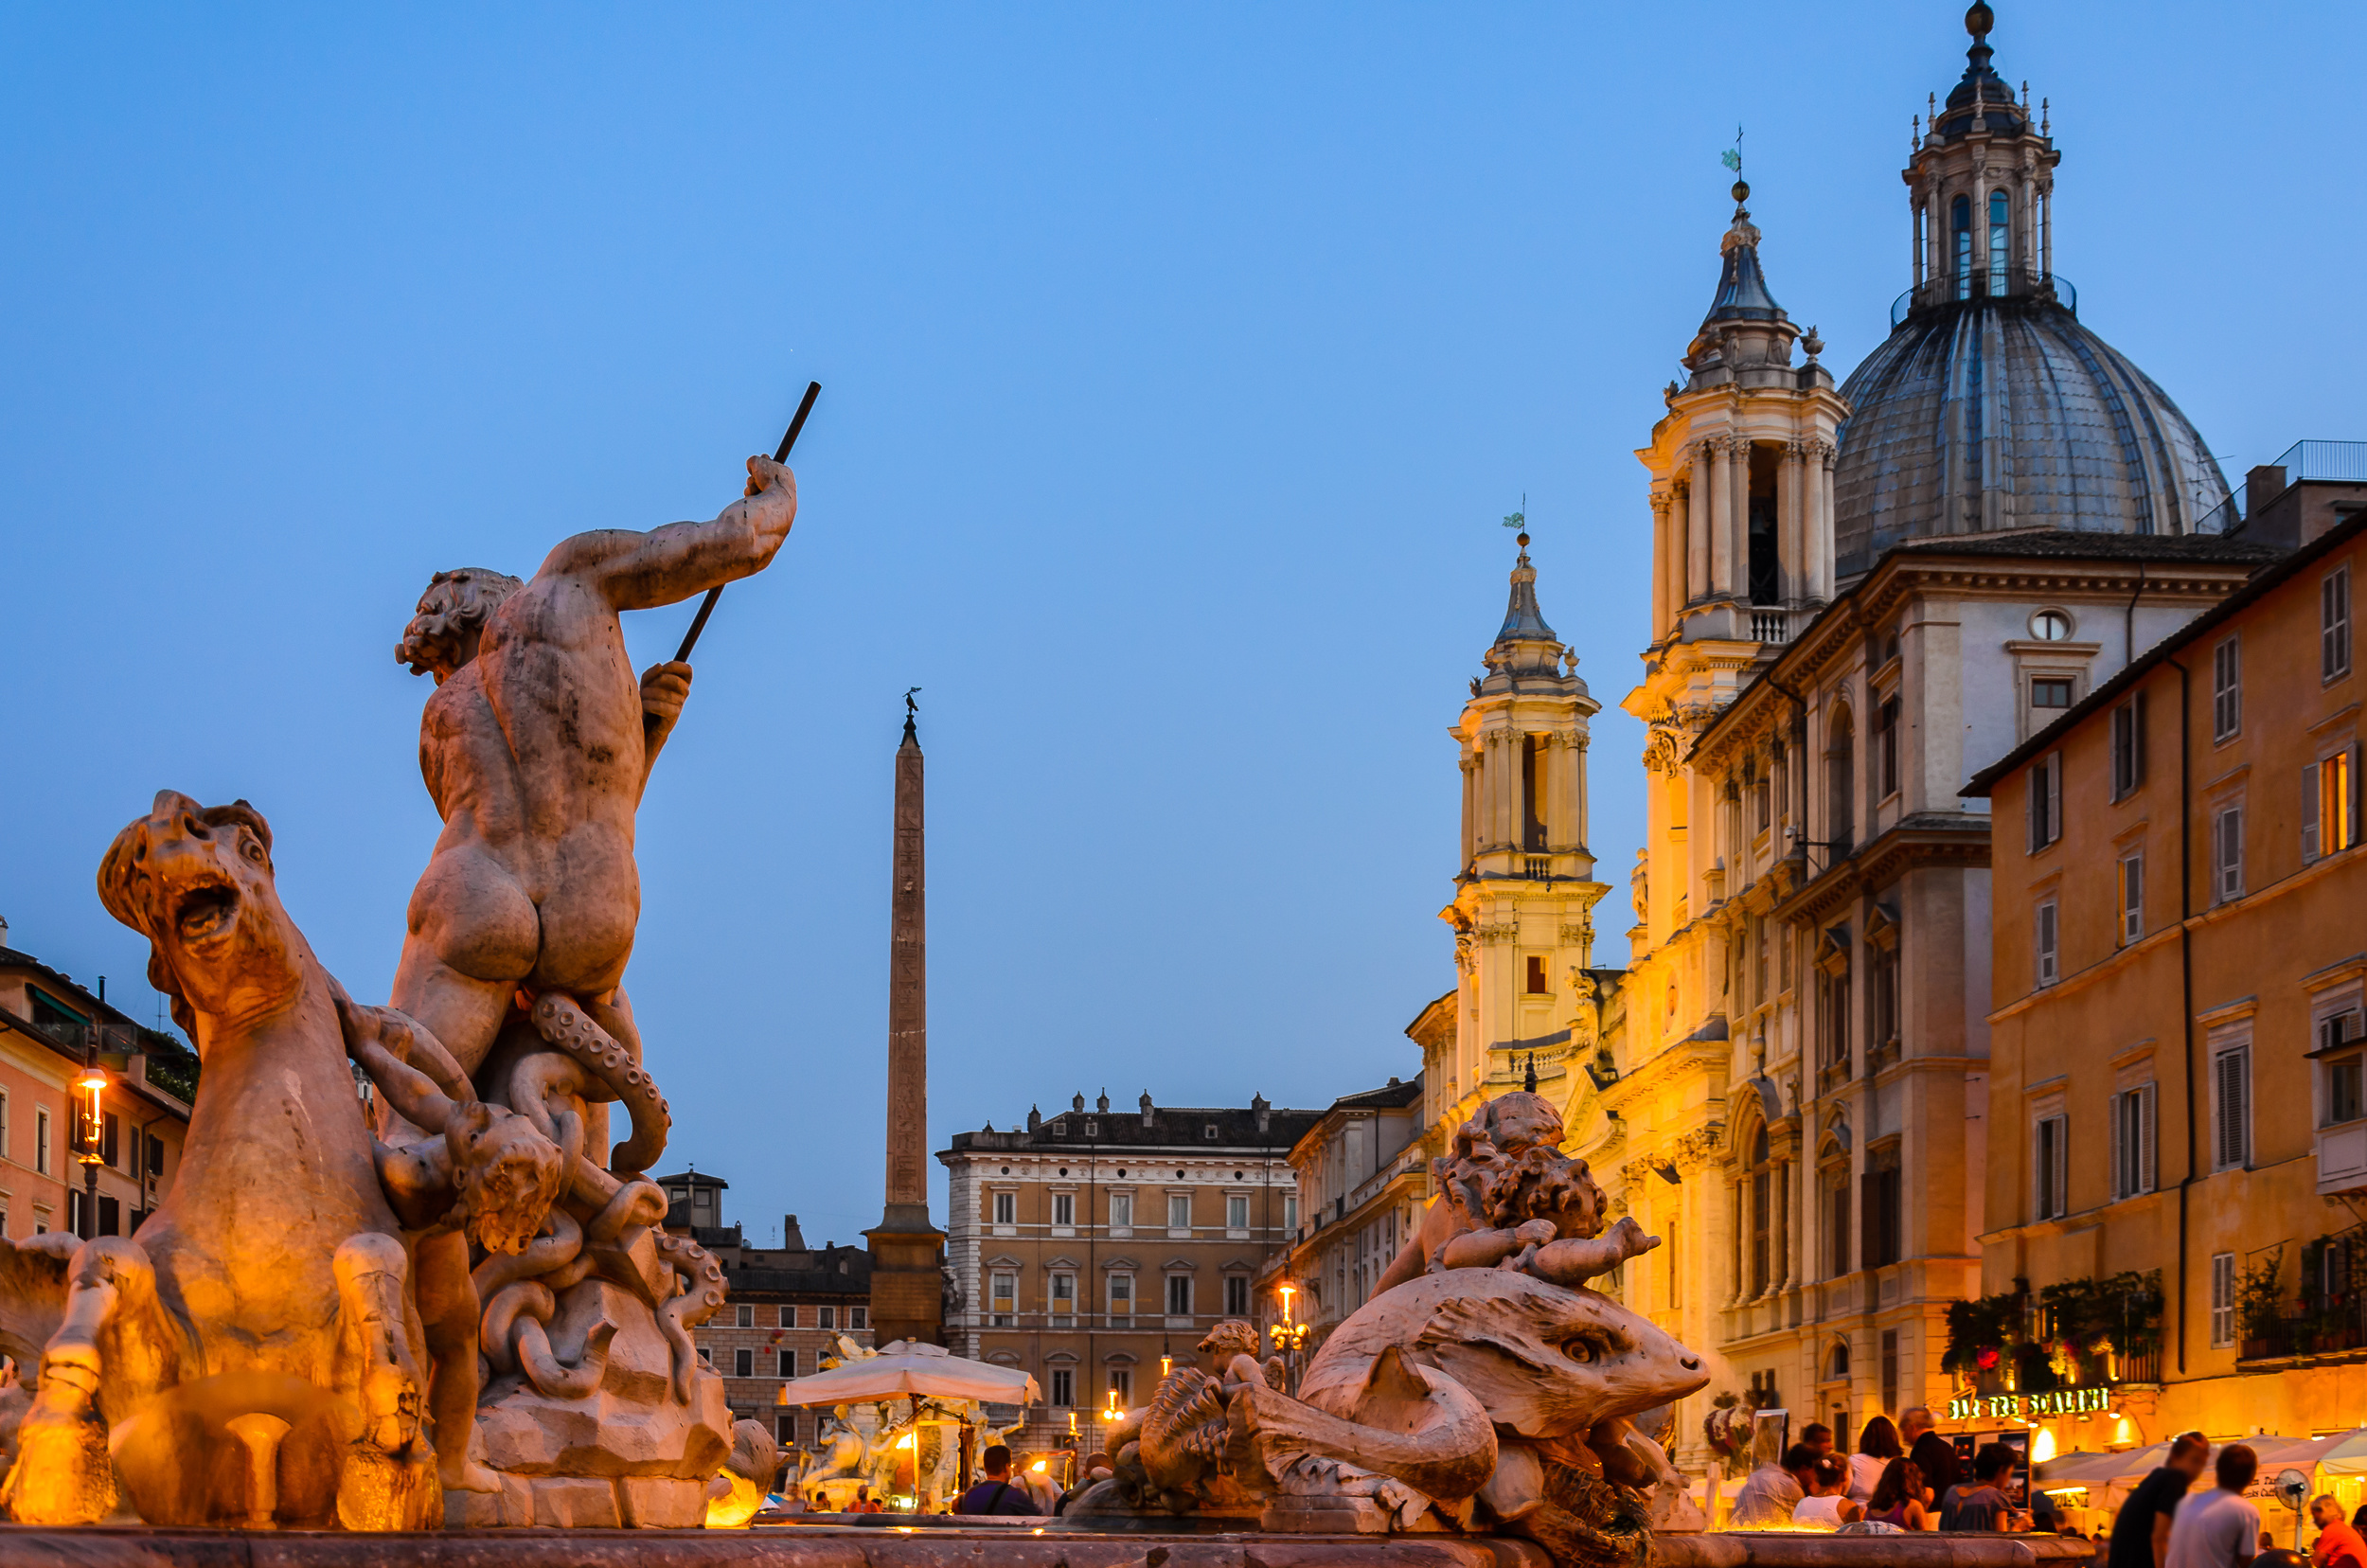 Piazza Navona in the evening